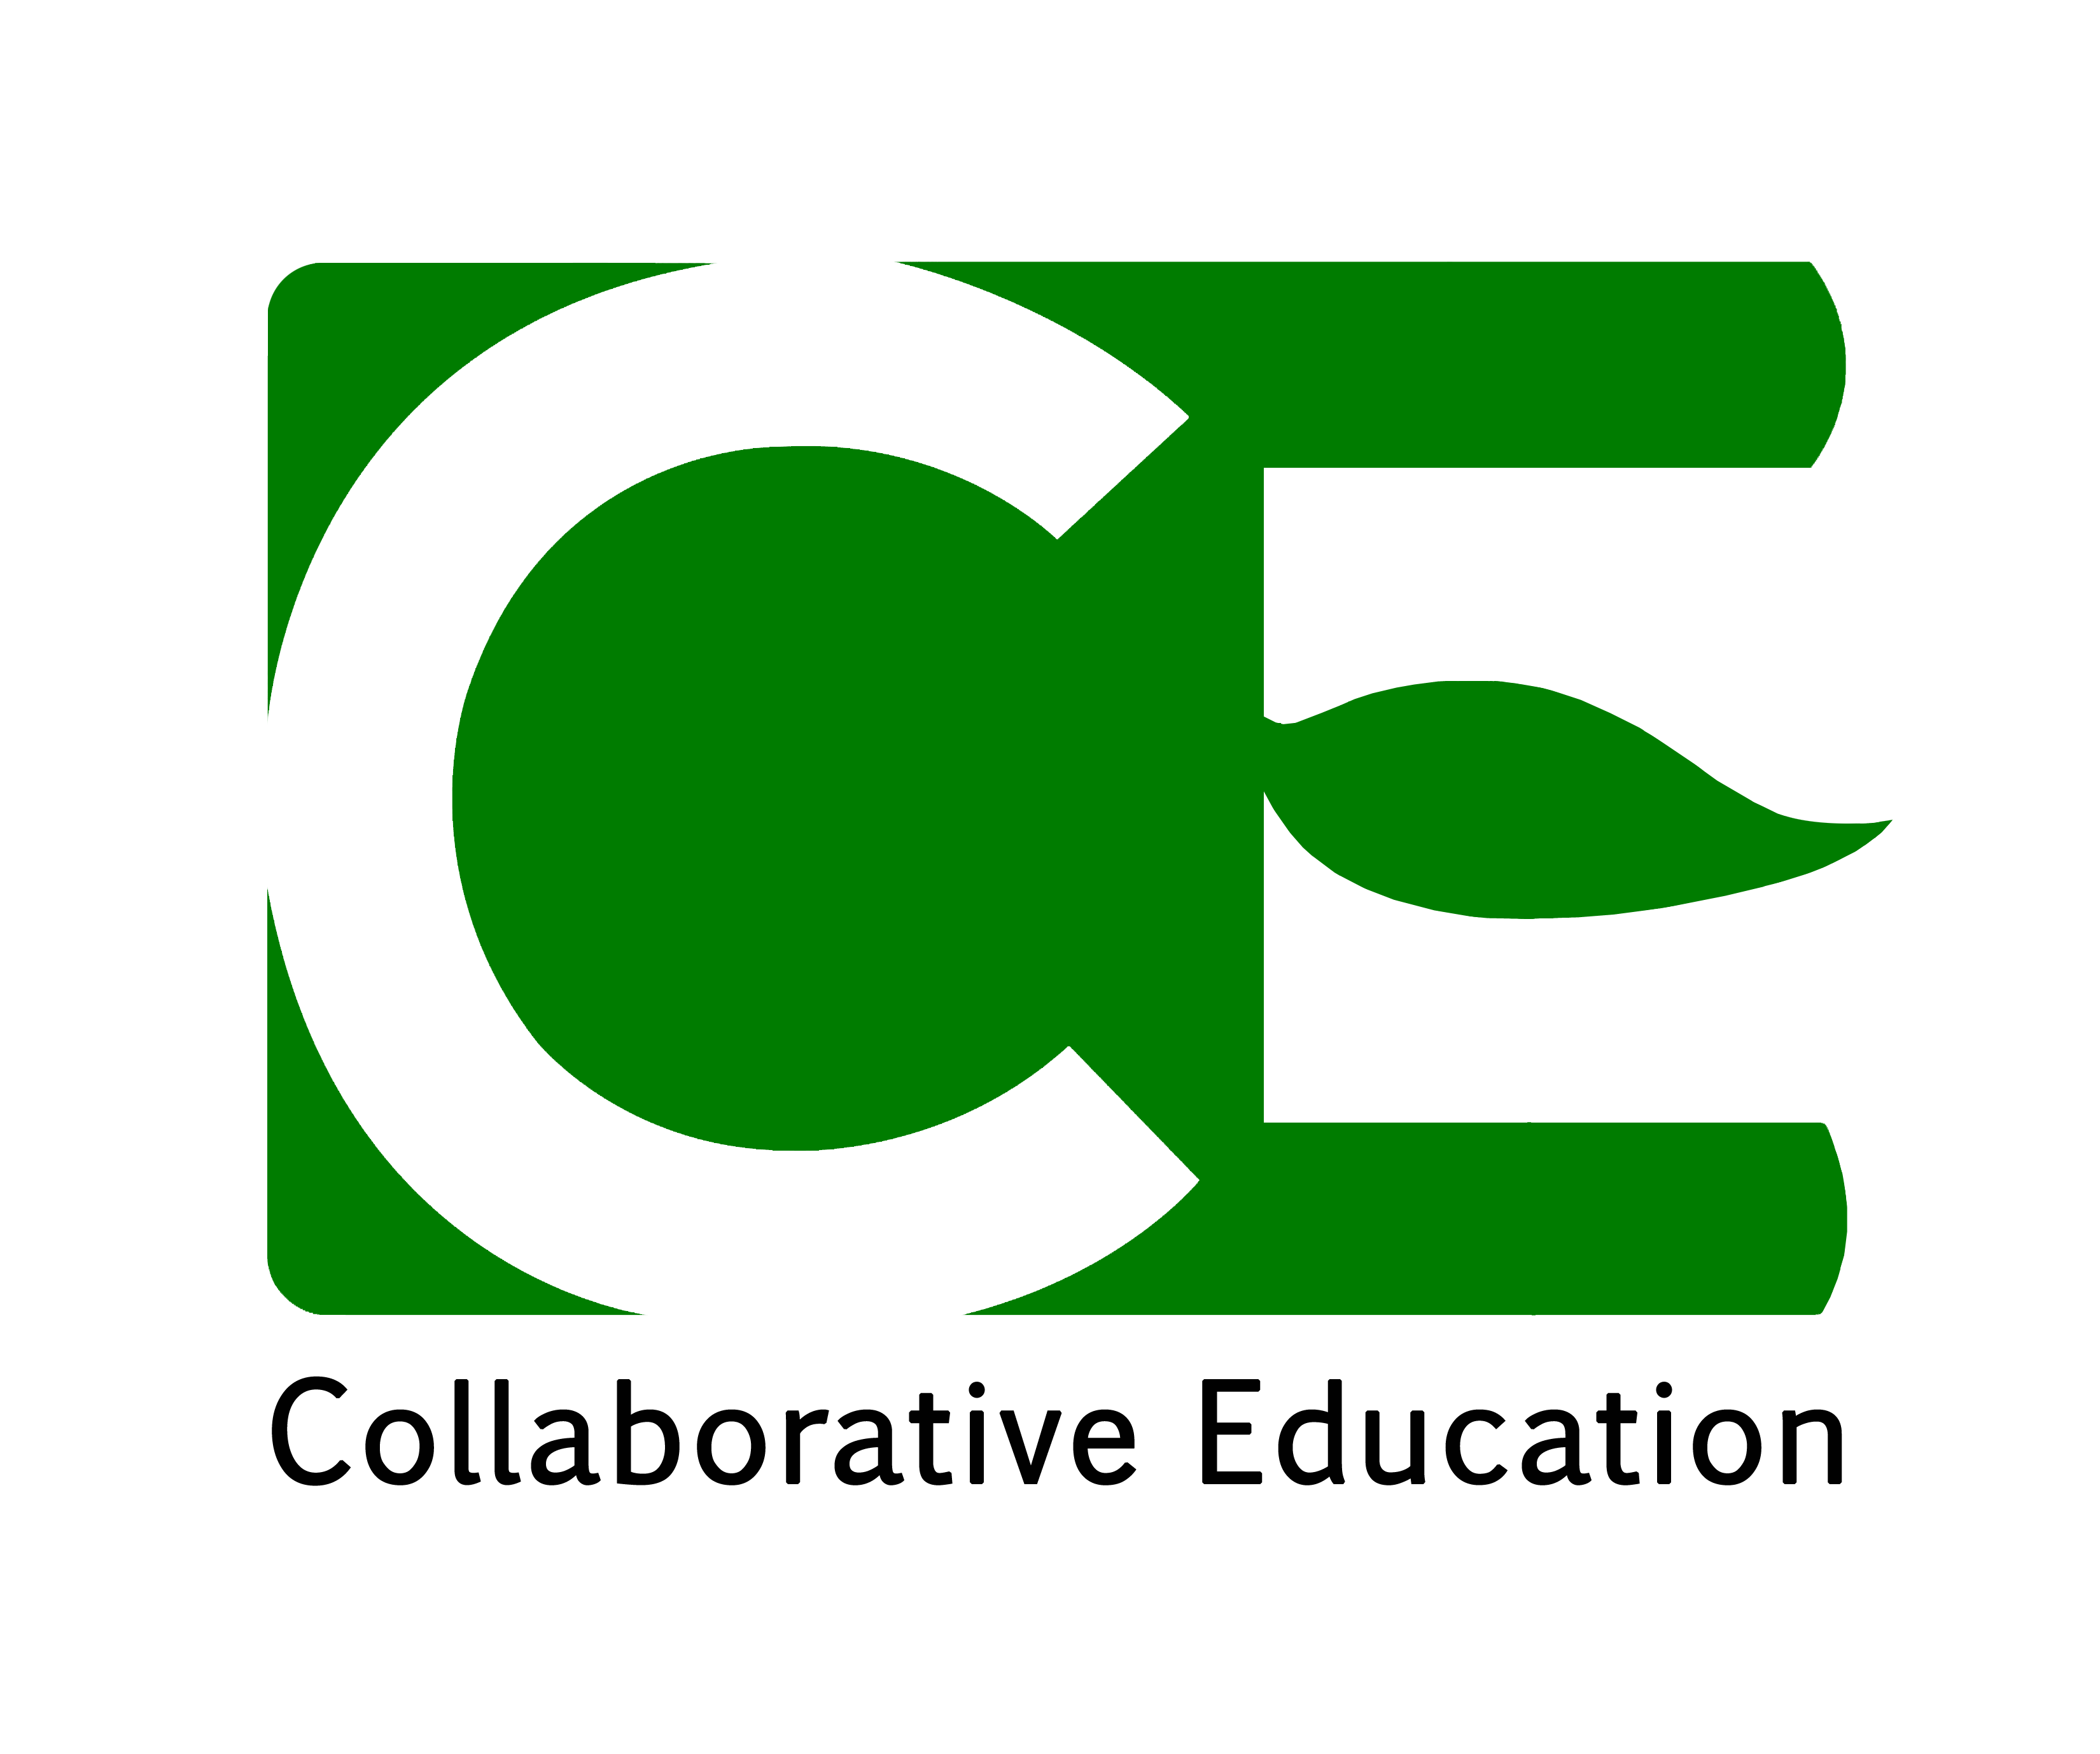 Collaborative Teaching : Collaborative education